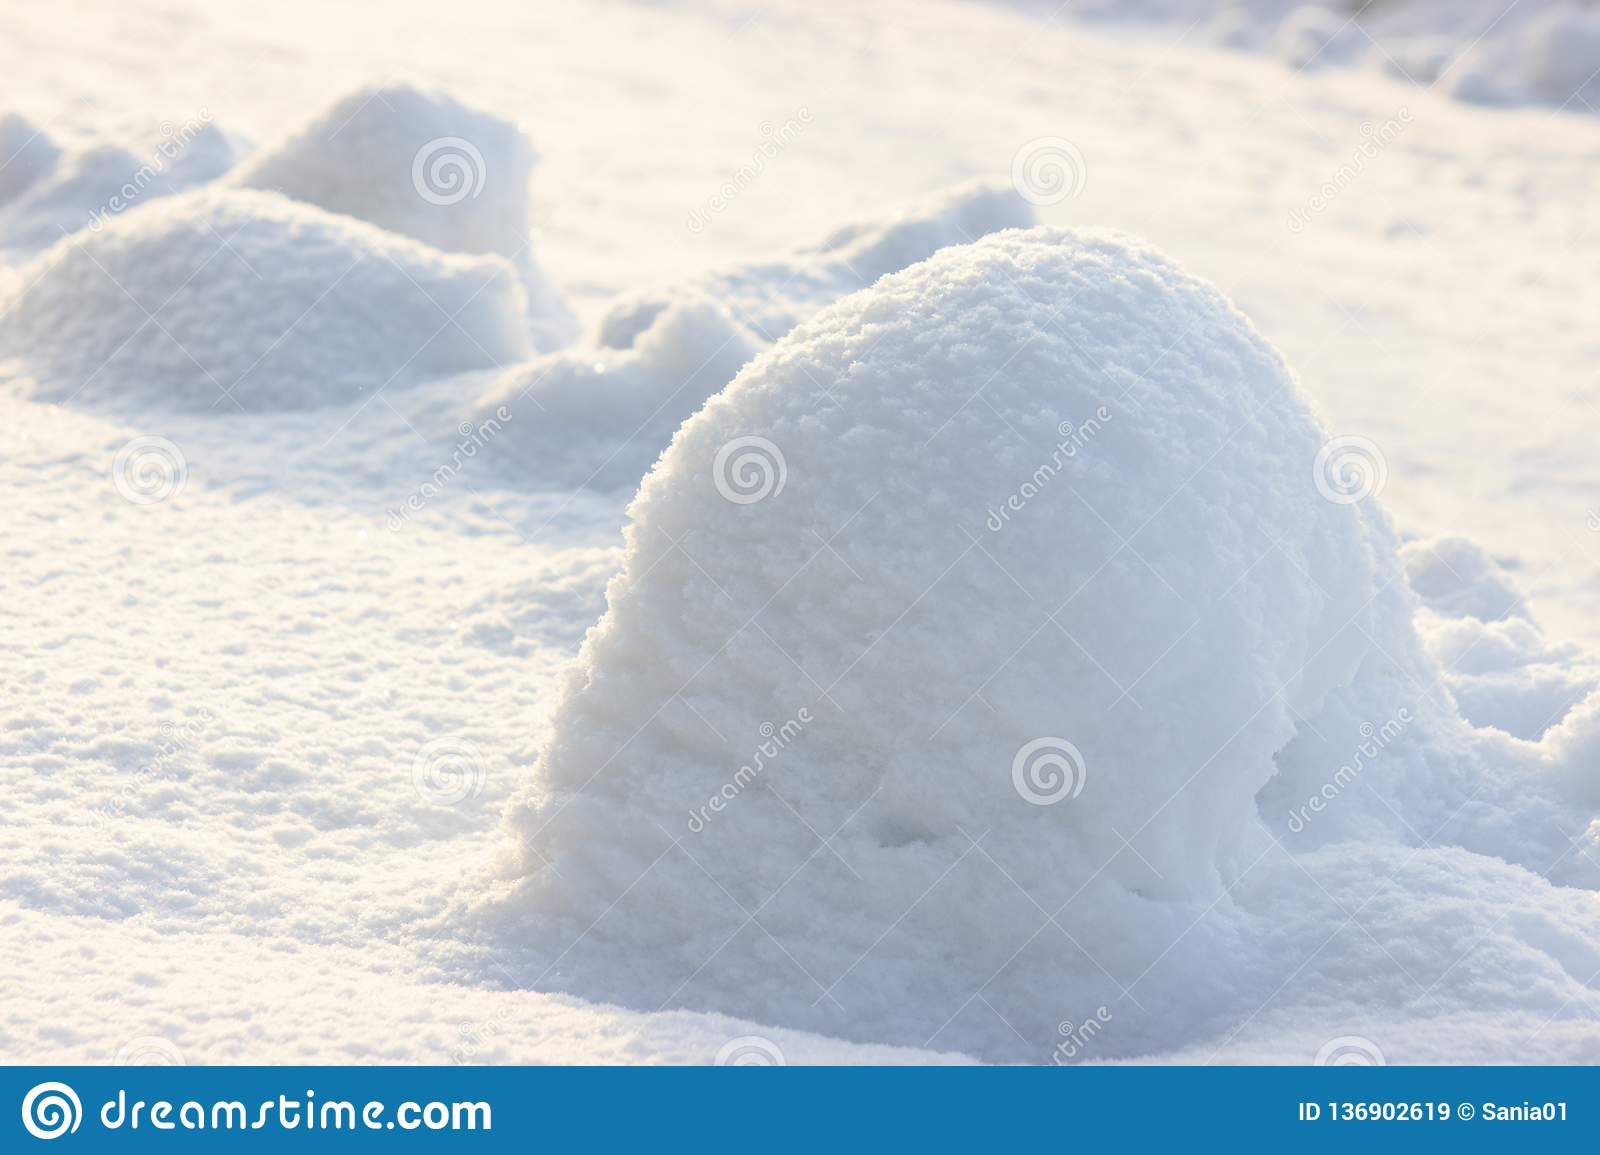 Snow snowbank on a Sunny day. Fluffy snow shimmers in the sun, abstract natural figures